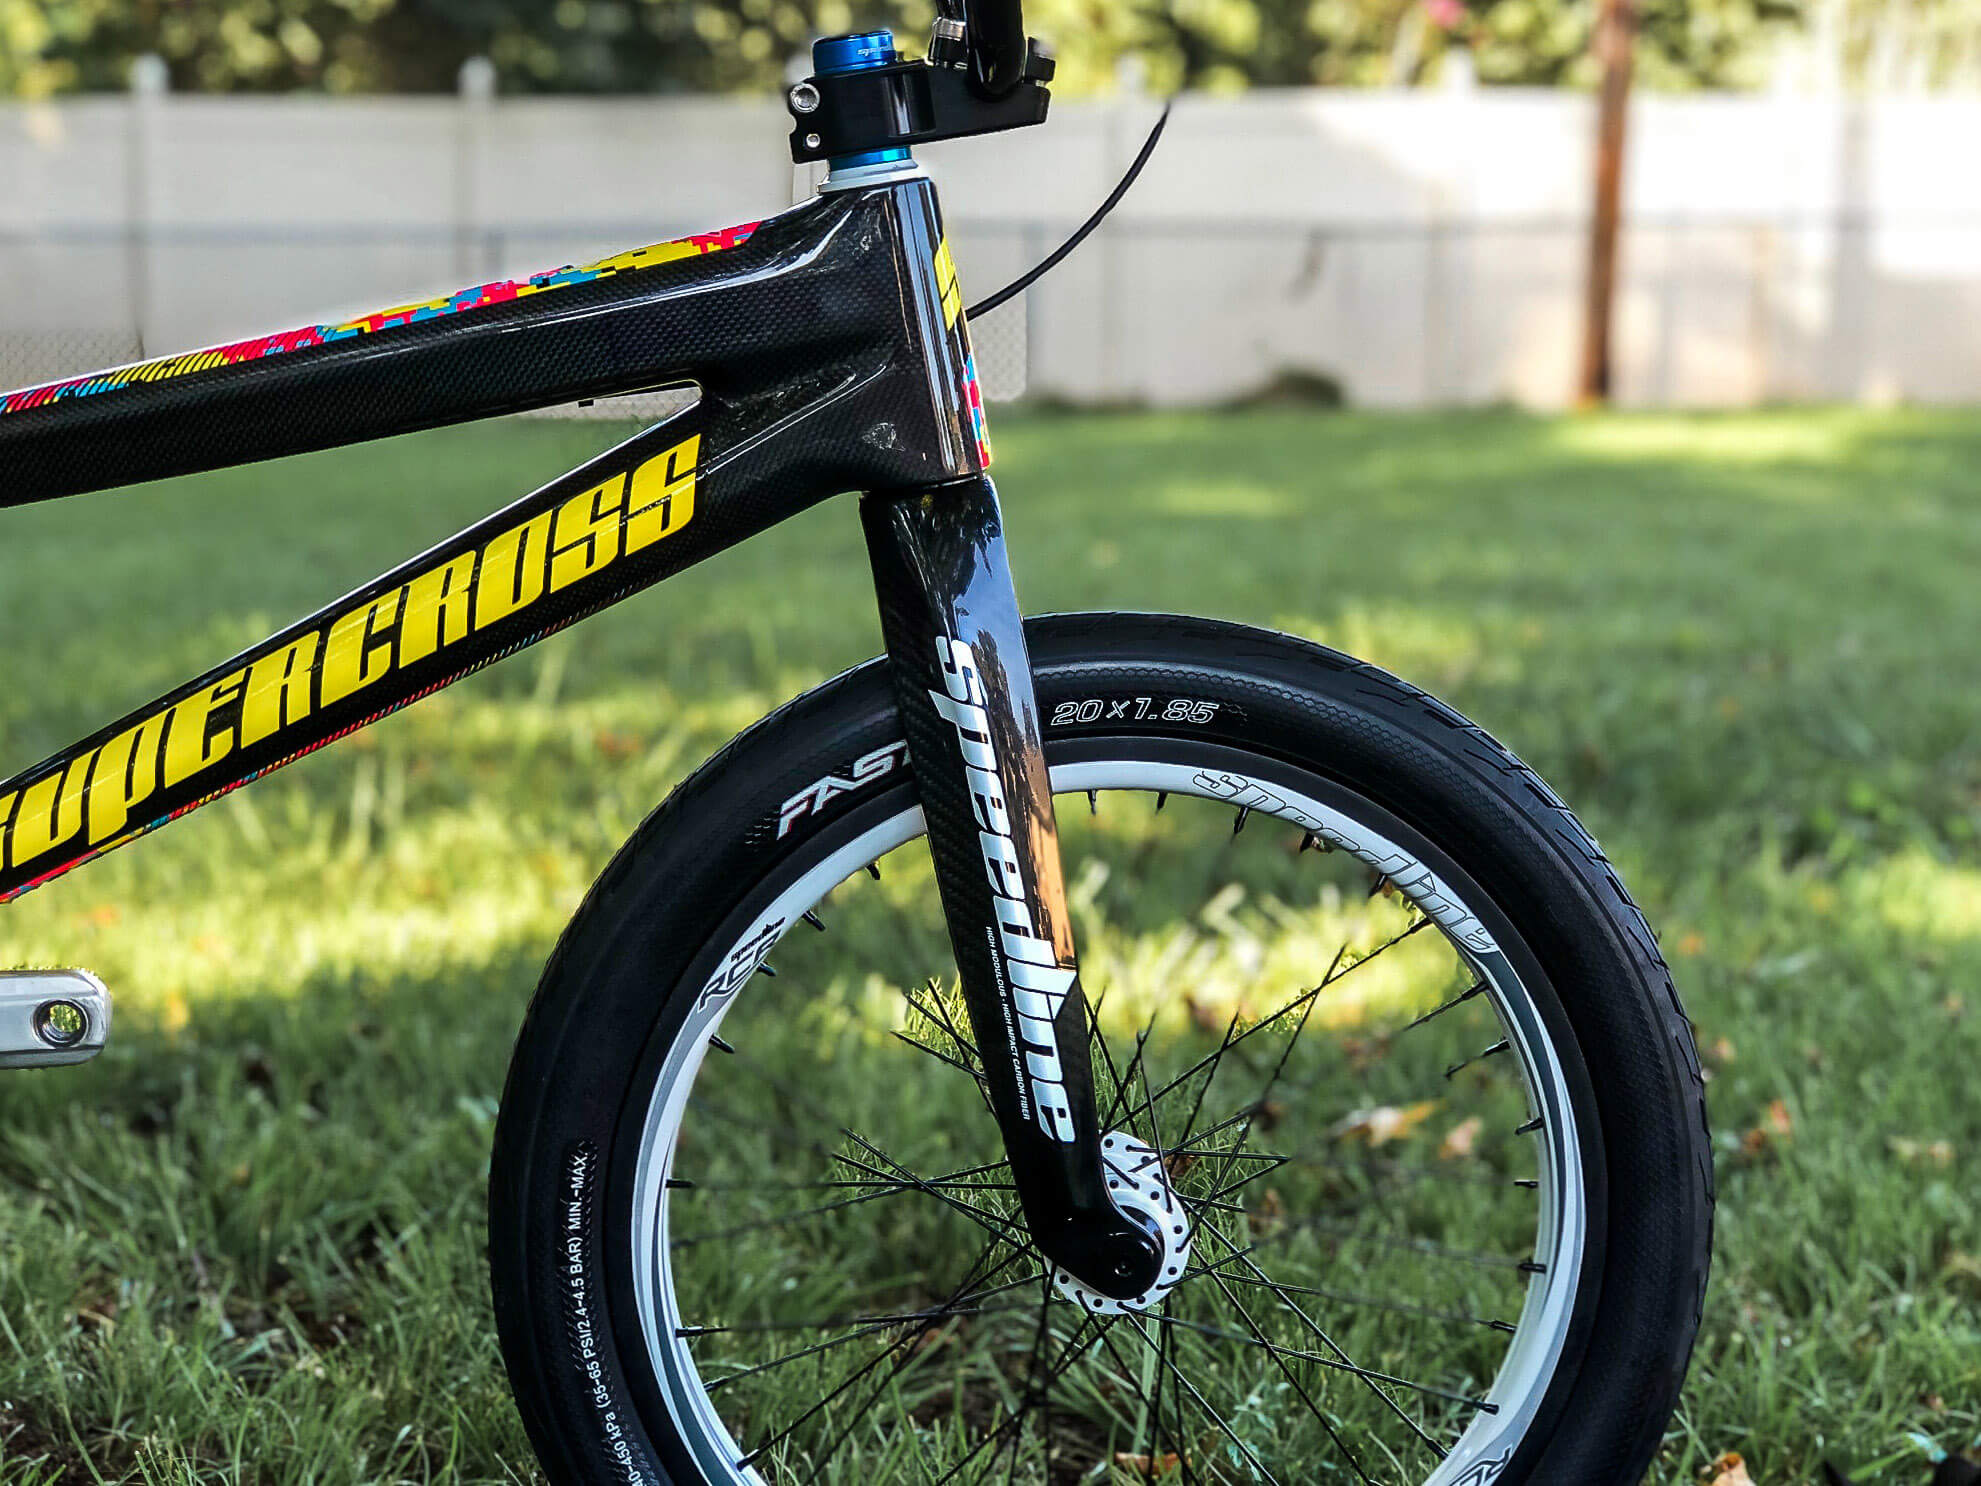 KJ Supercross Envy BLK 2 2019 - KJ Romero